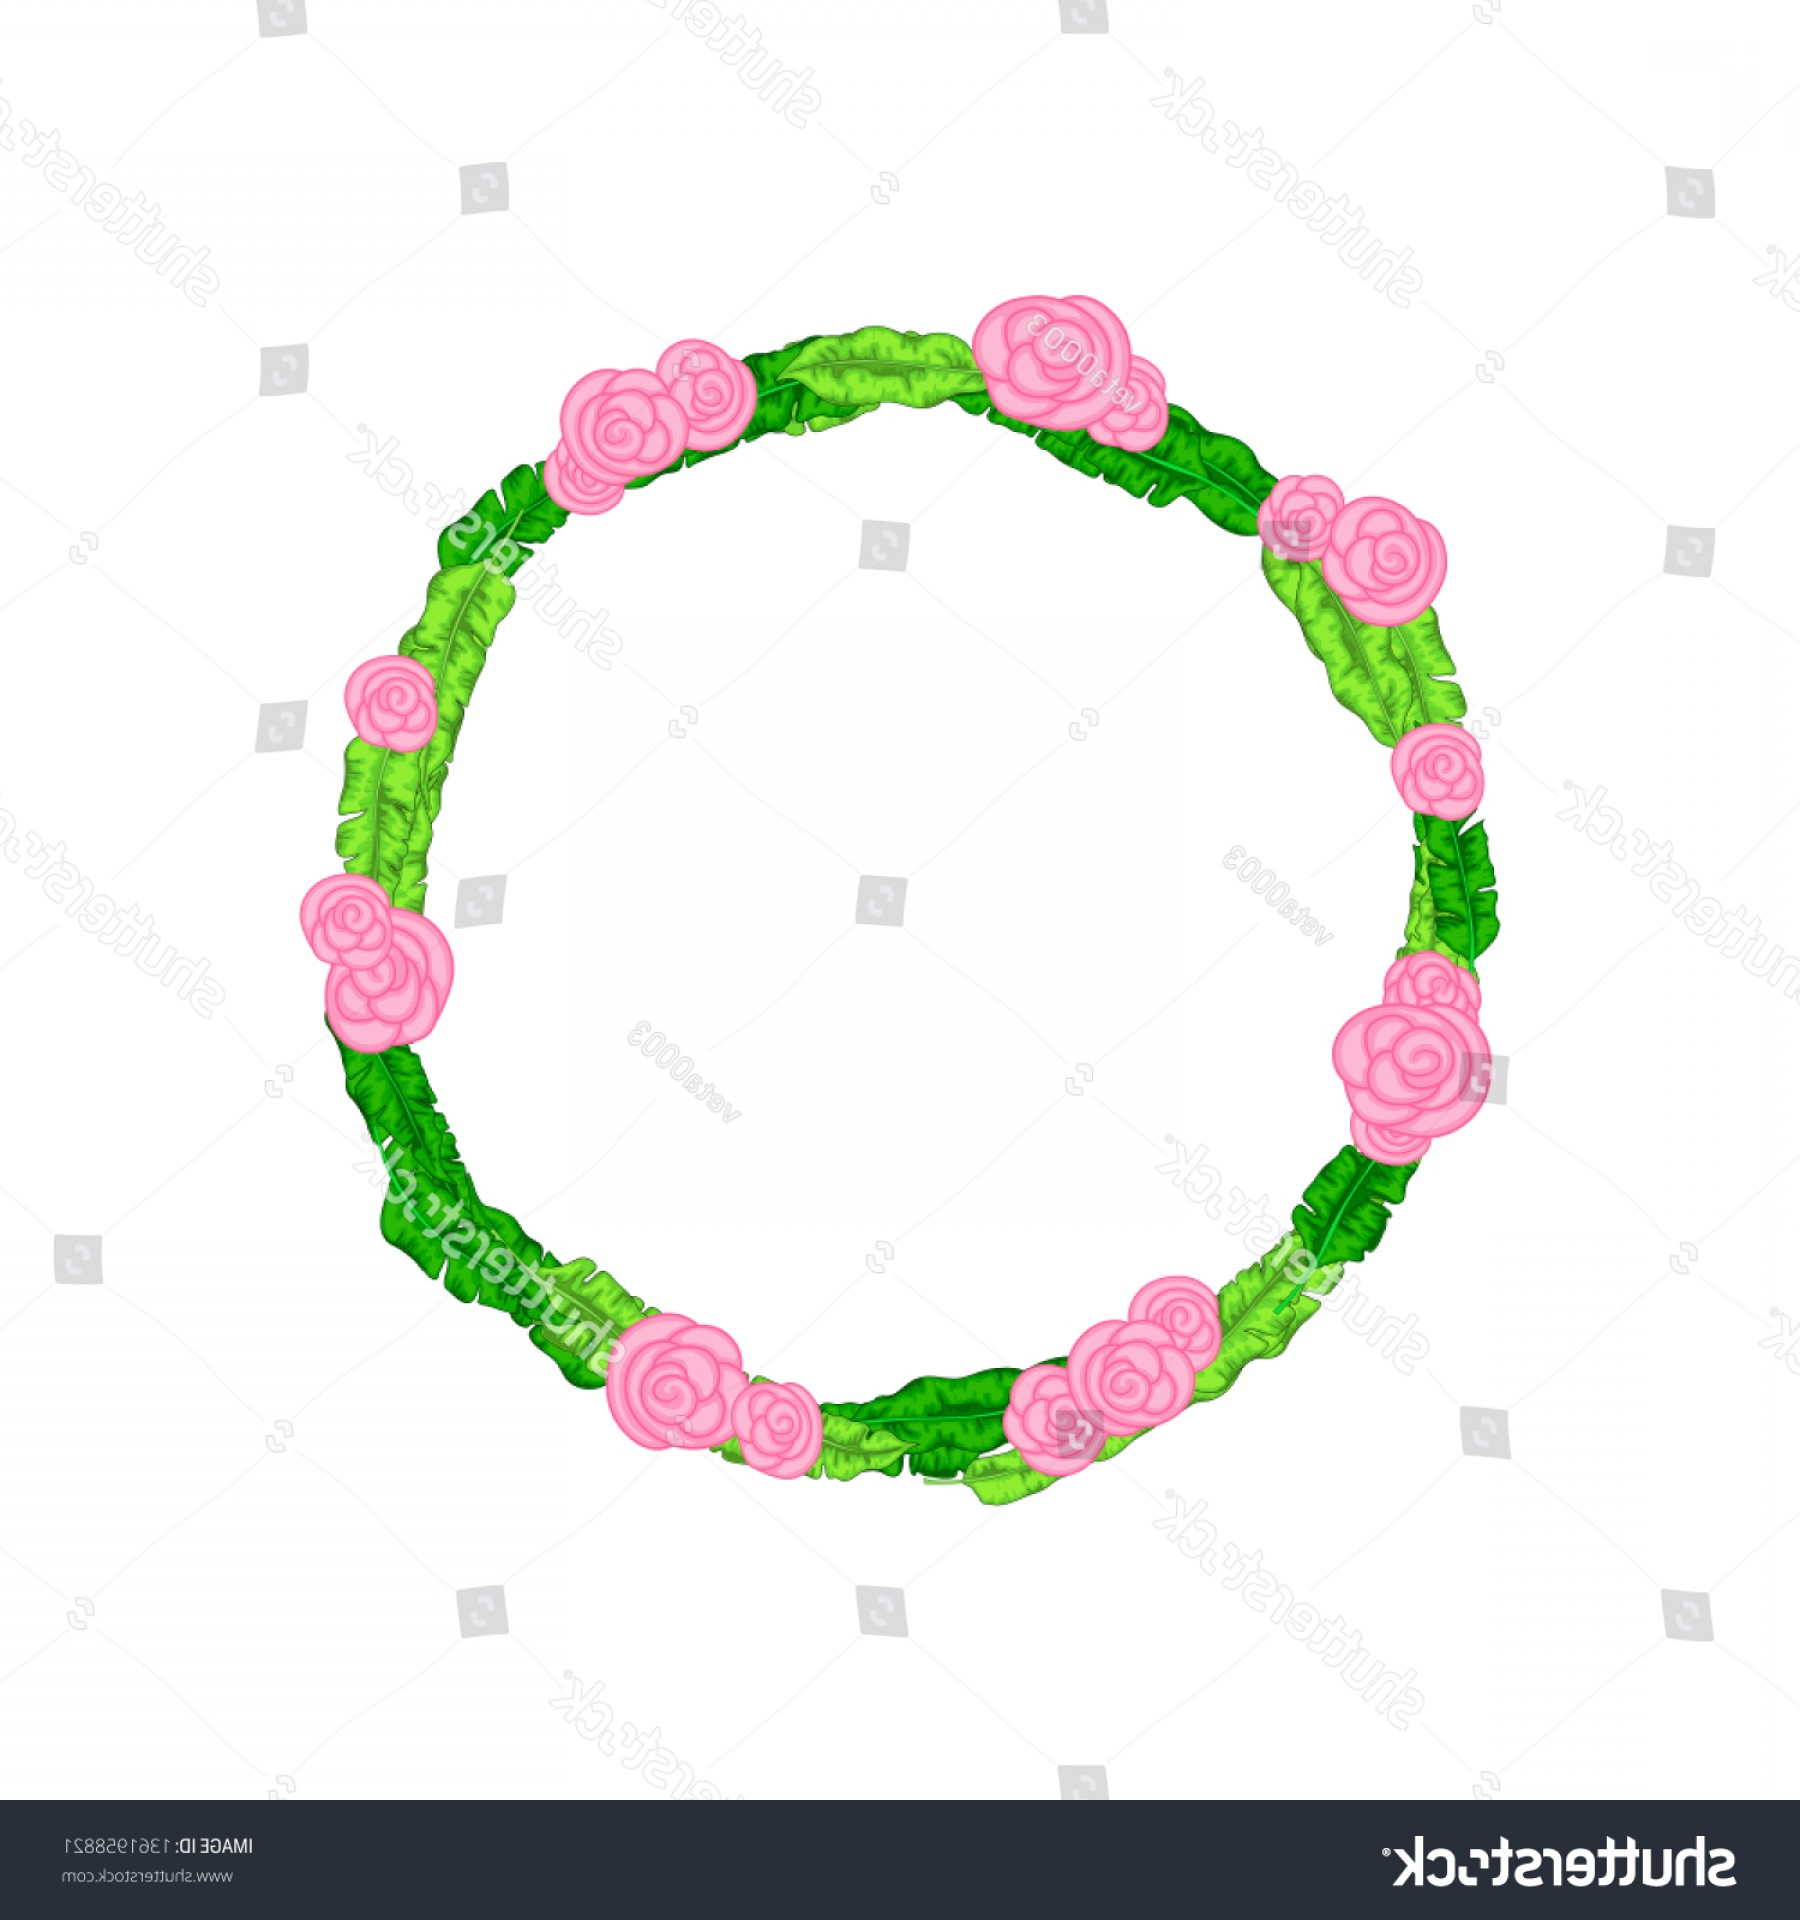 Beautiful Flowers Vector Graphic: Frame Beautiful Flowers Vector Graphics